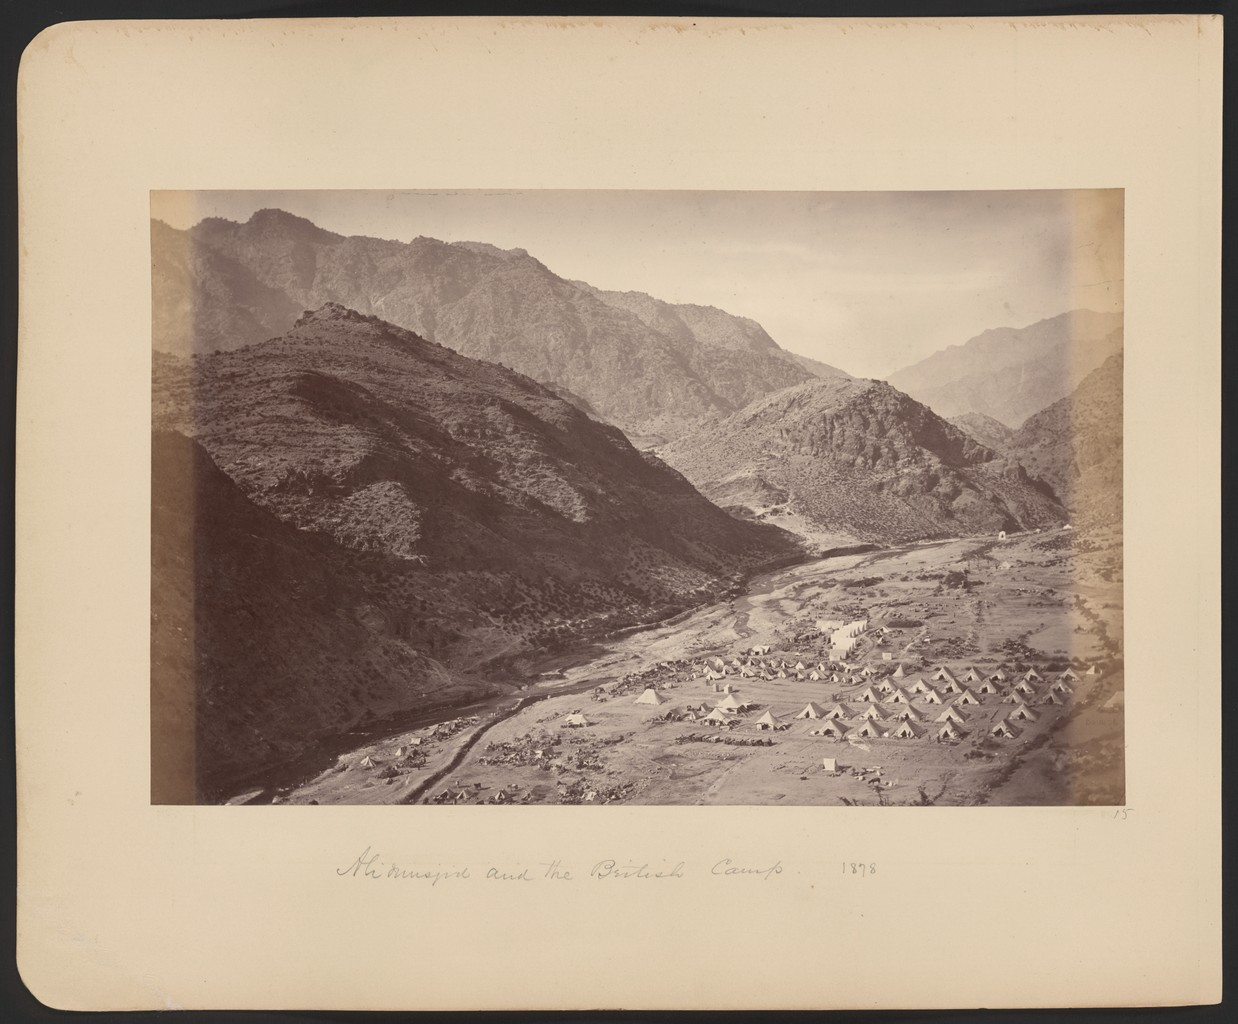 British military camp at the narrow part of the Khyber Pass during the Second Anglo-Afghan War of 1878-1880.